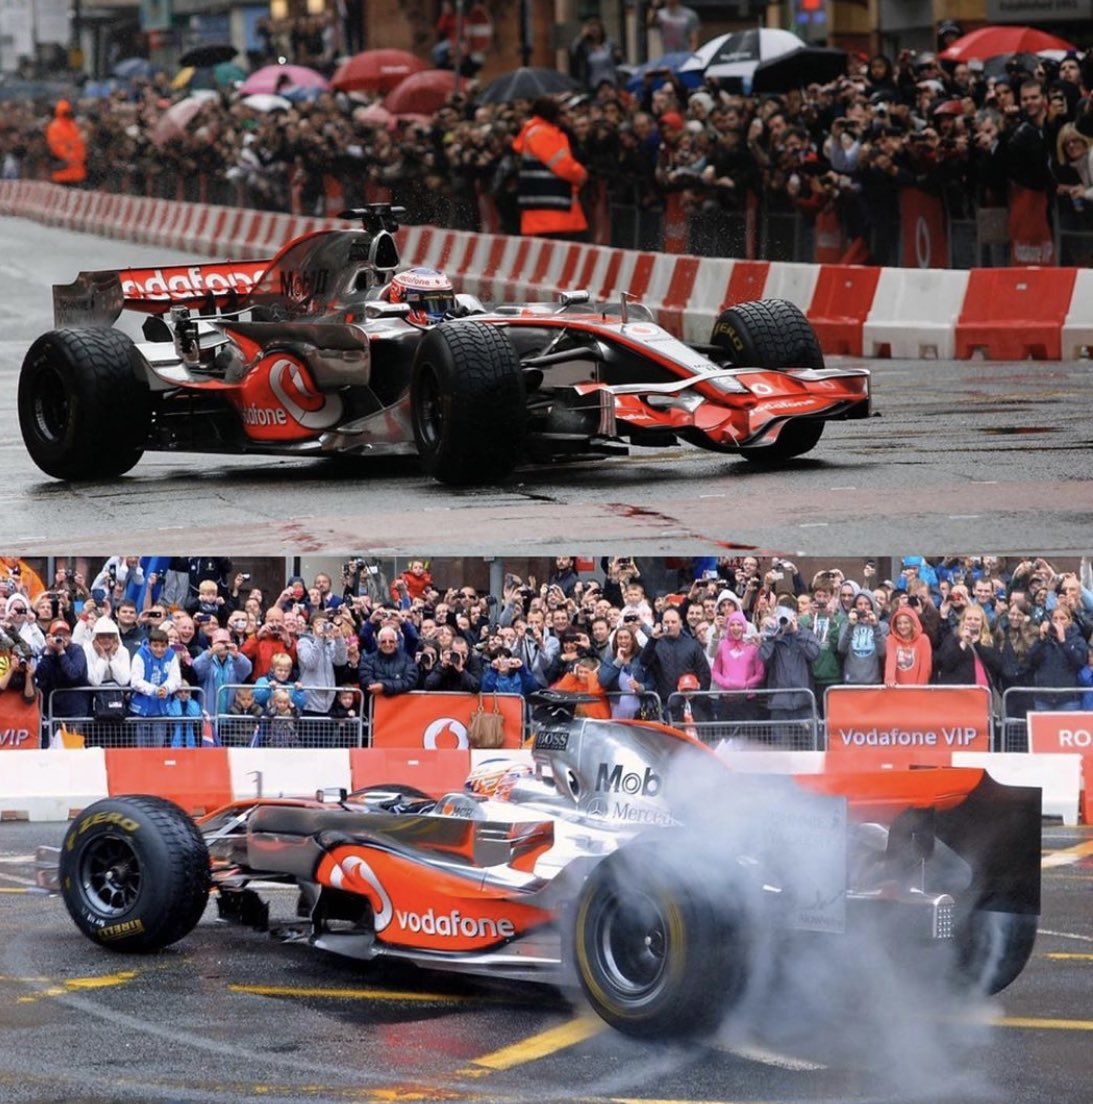 First time I ever saw F1 cars up close when @JensonButton drove @McLarenF1 around the Manchester streets in 2011 ever since that day been to many GP's across the world glad to have found updated quality photos of this special day! https://t.co/0kH9N5jR7z